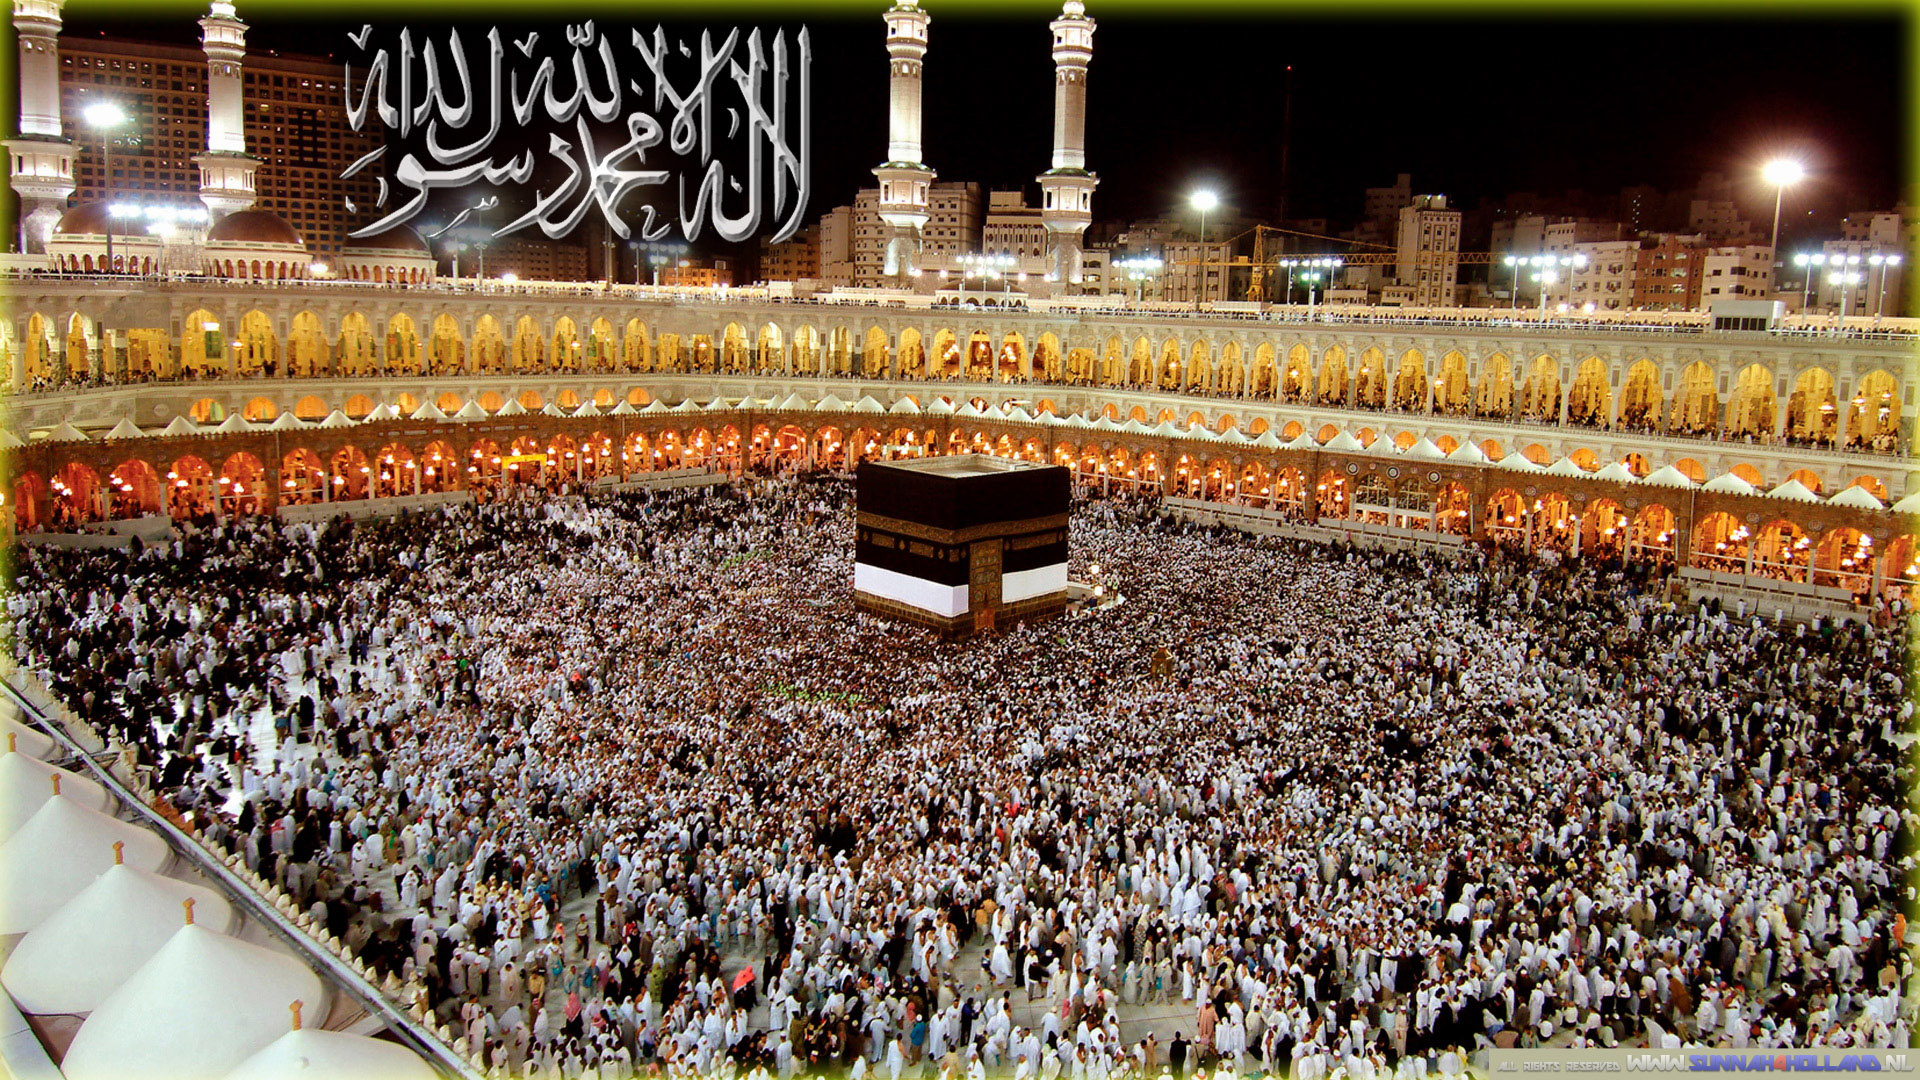 Makkah Wallpaper Desktop Mobile Phones